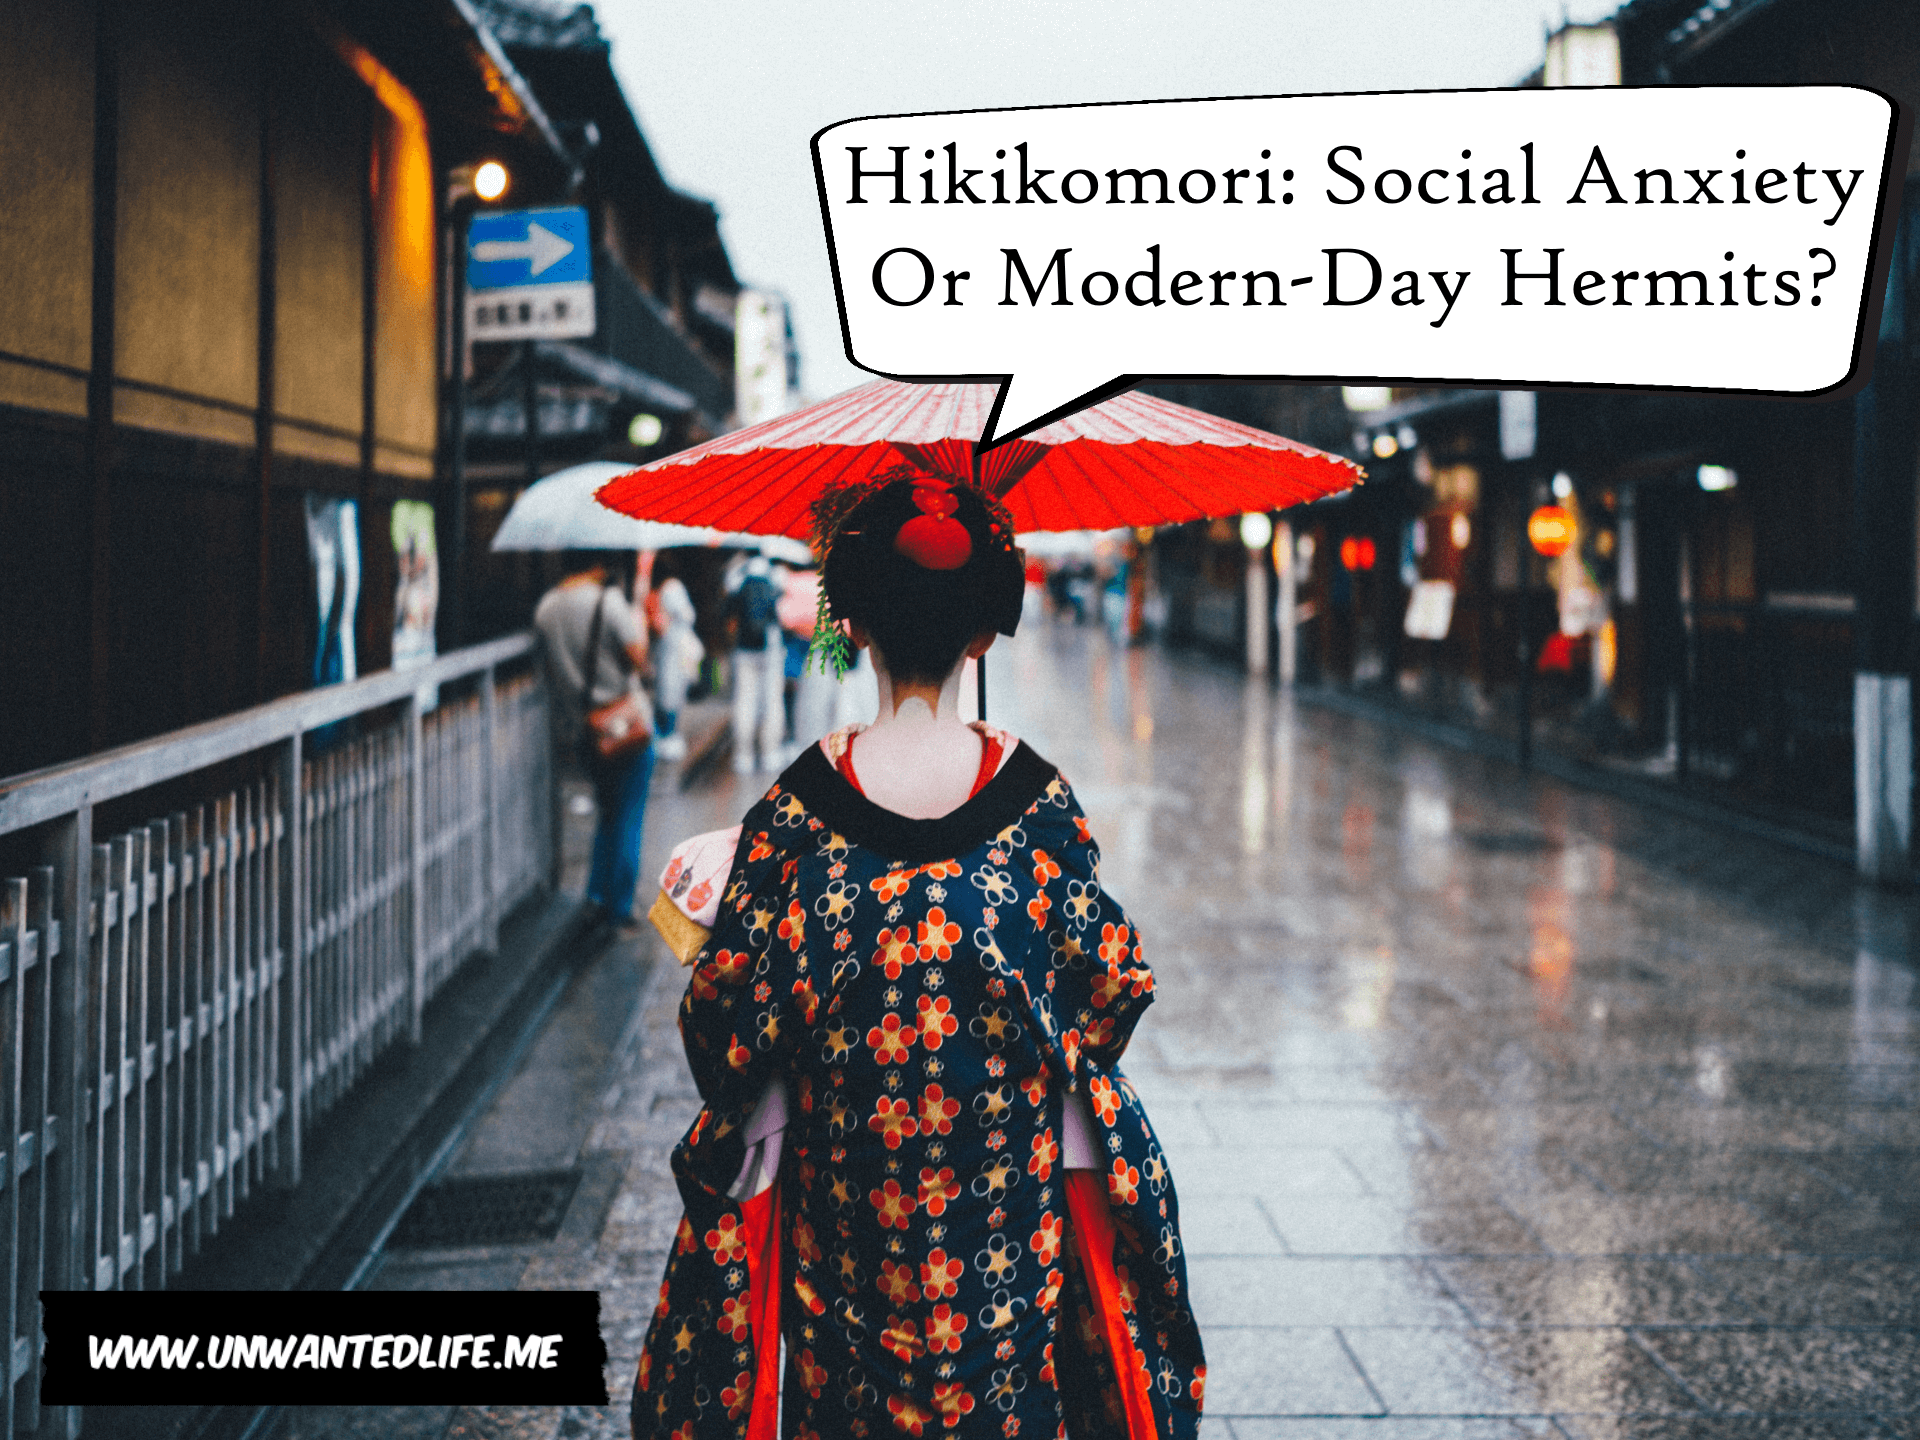 A photo of a Geisha Girl walking in the rain under a Oil-paper umbrella to represent the topic of the article - Hikikomori Social Anxiety Or Modern-Day Hermits